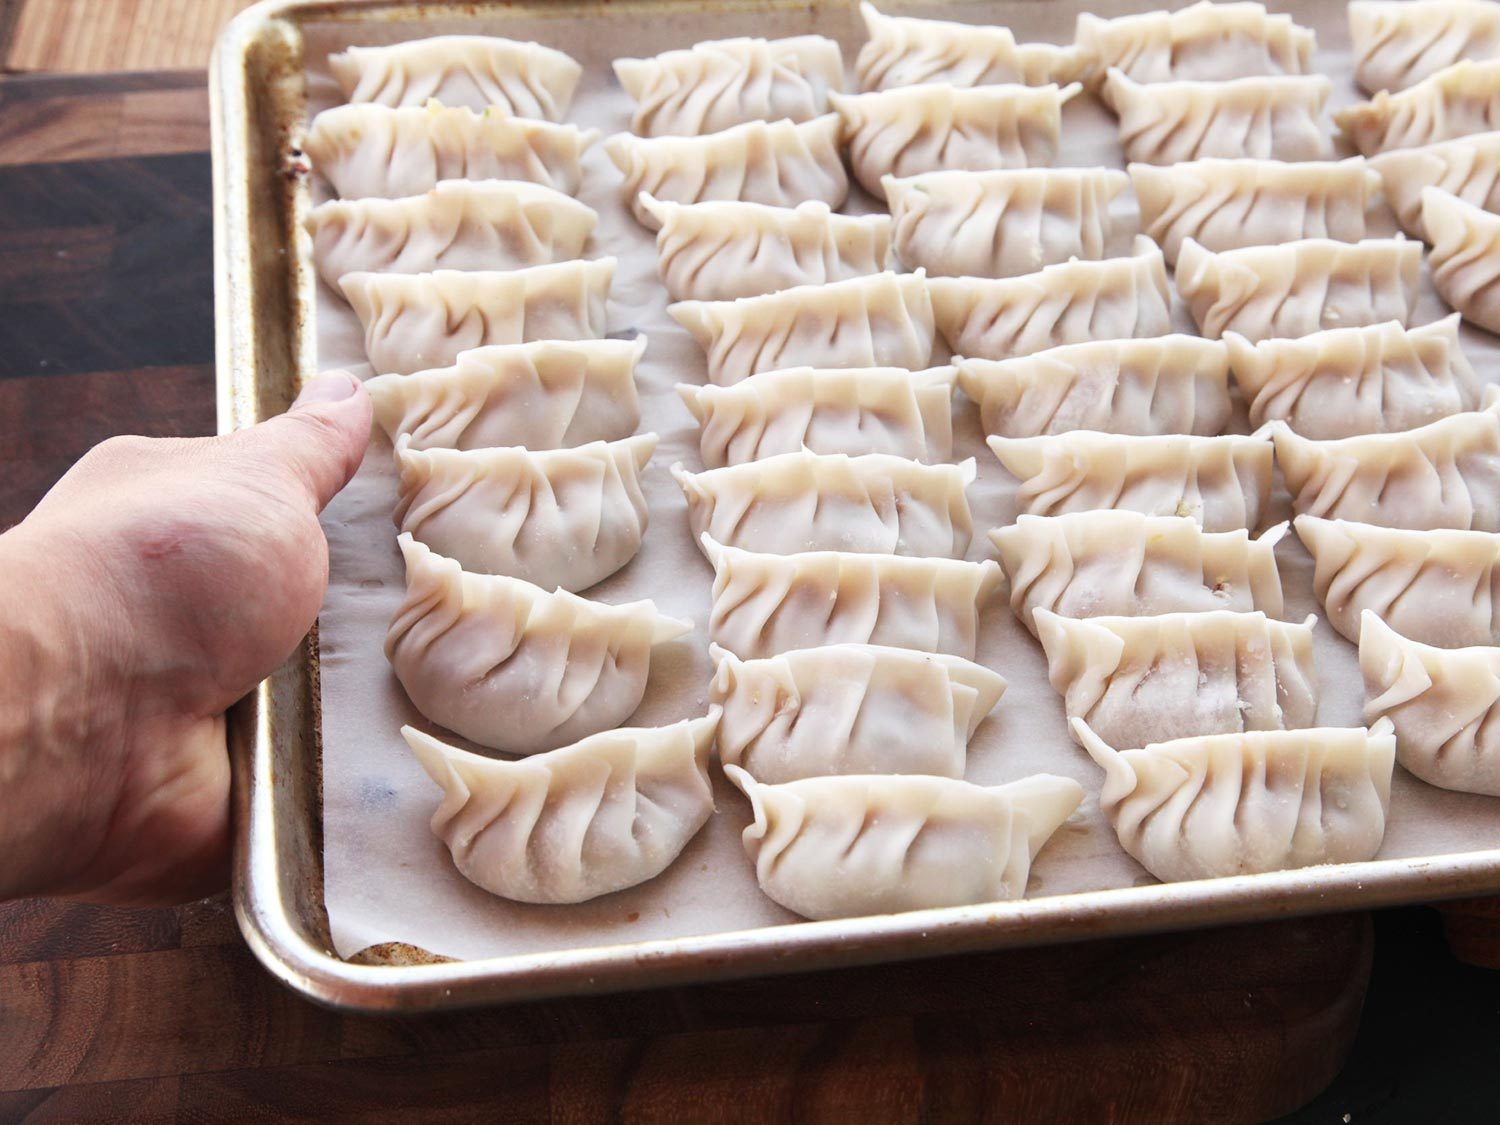 Frozen Dumplings Market Expected to Boost Revenue Growth During 2019 to 2024